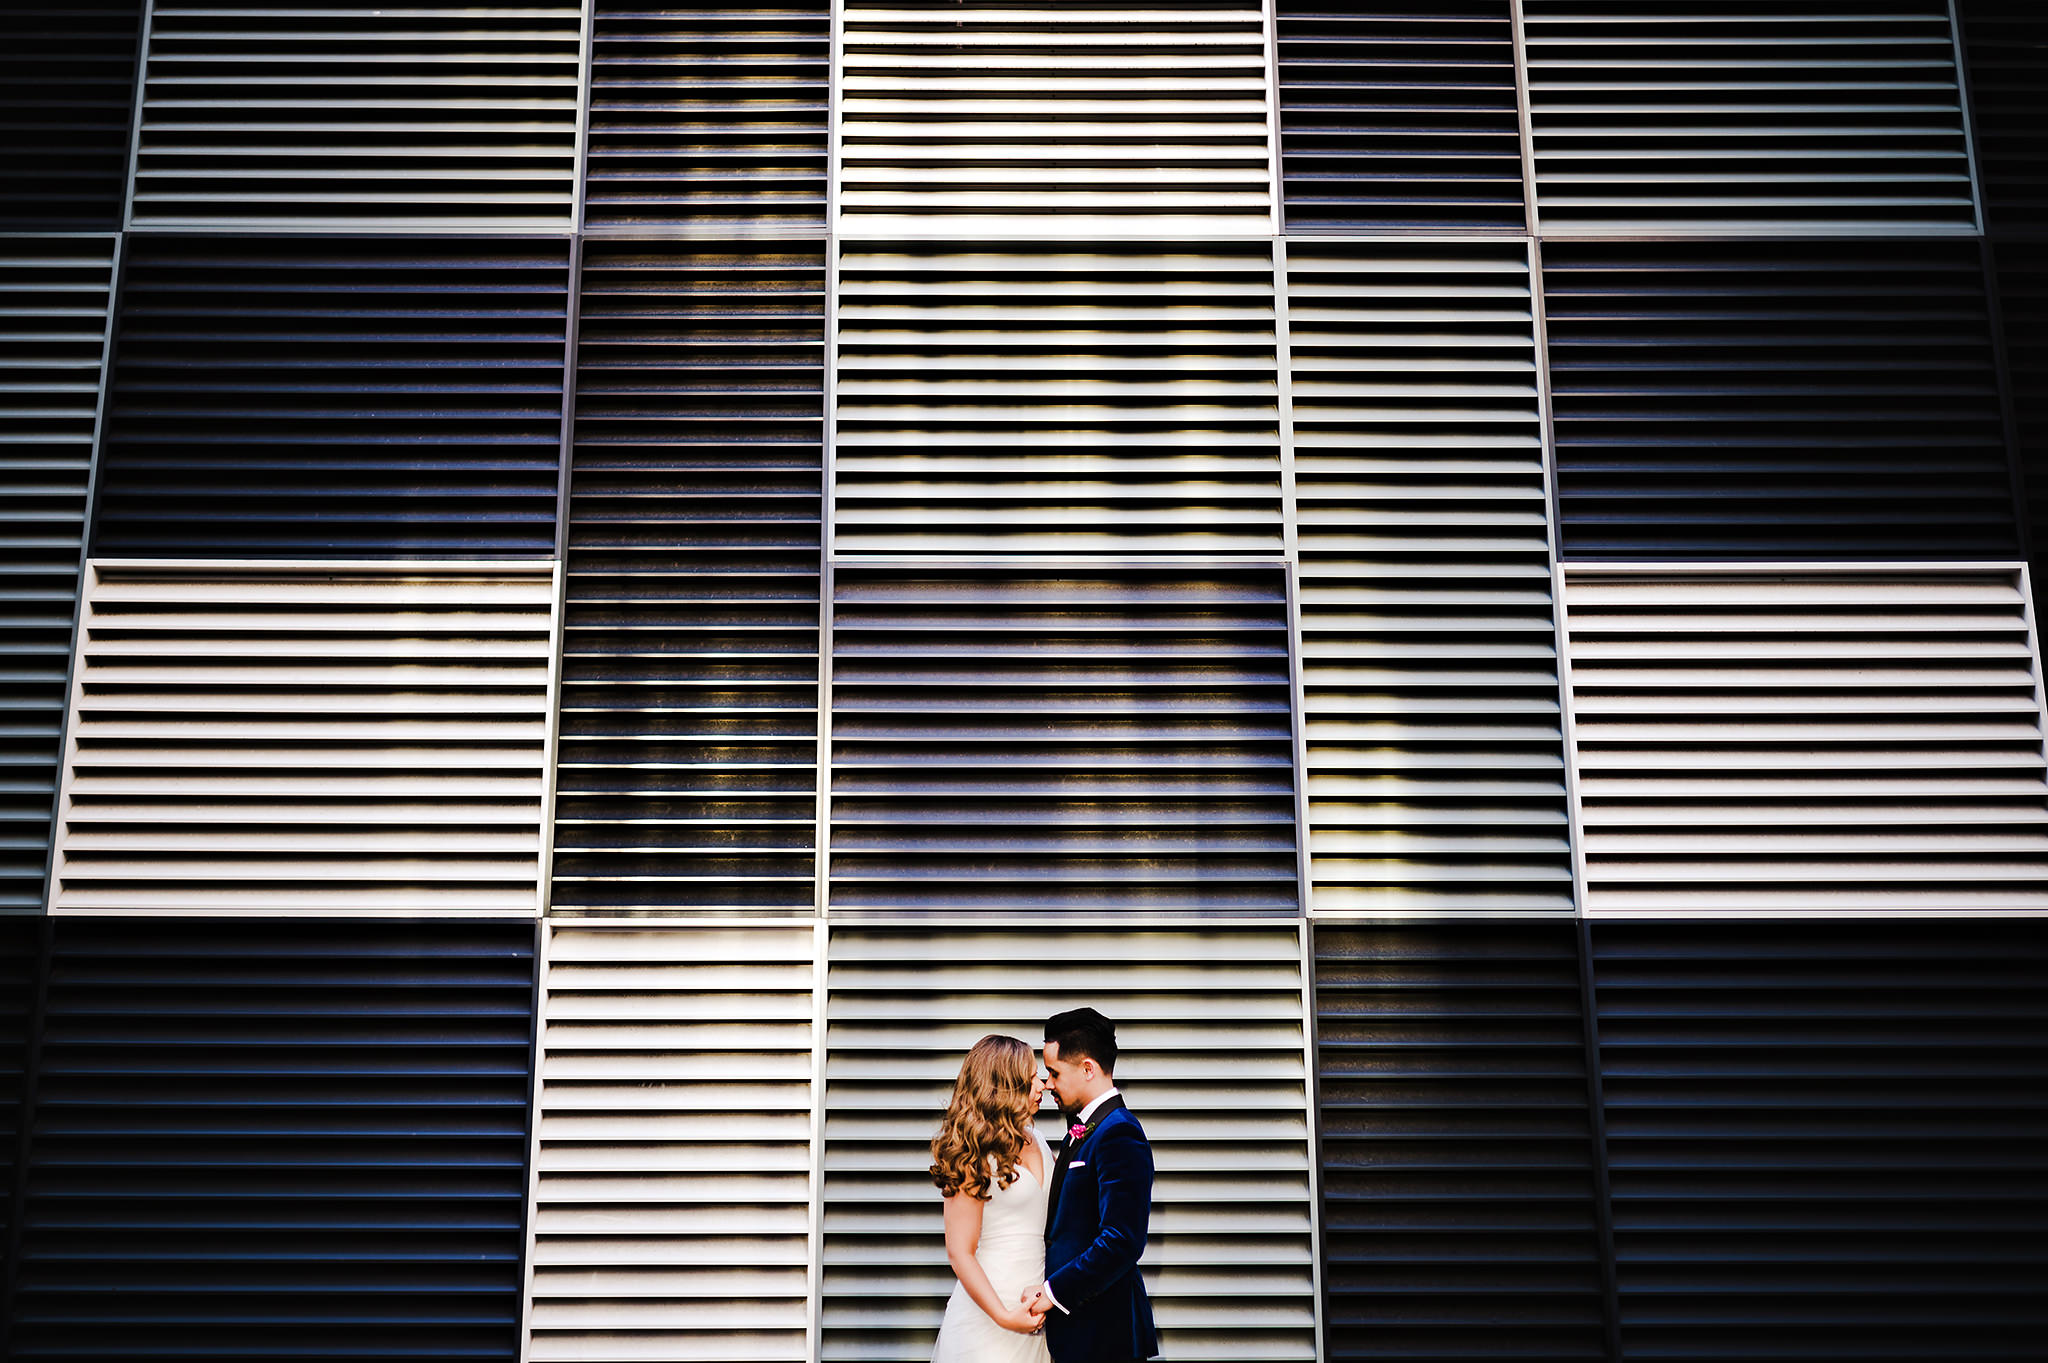 3 Urban Wedding Photography Brisbane graphic visual artistic.JPG